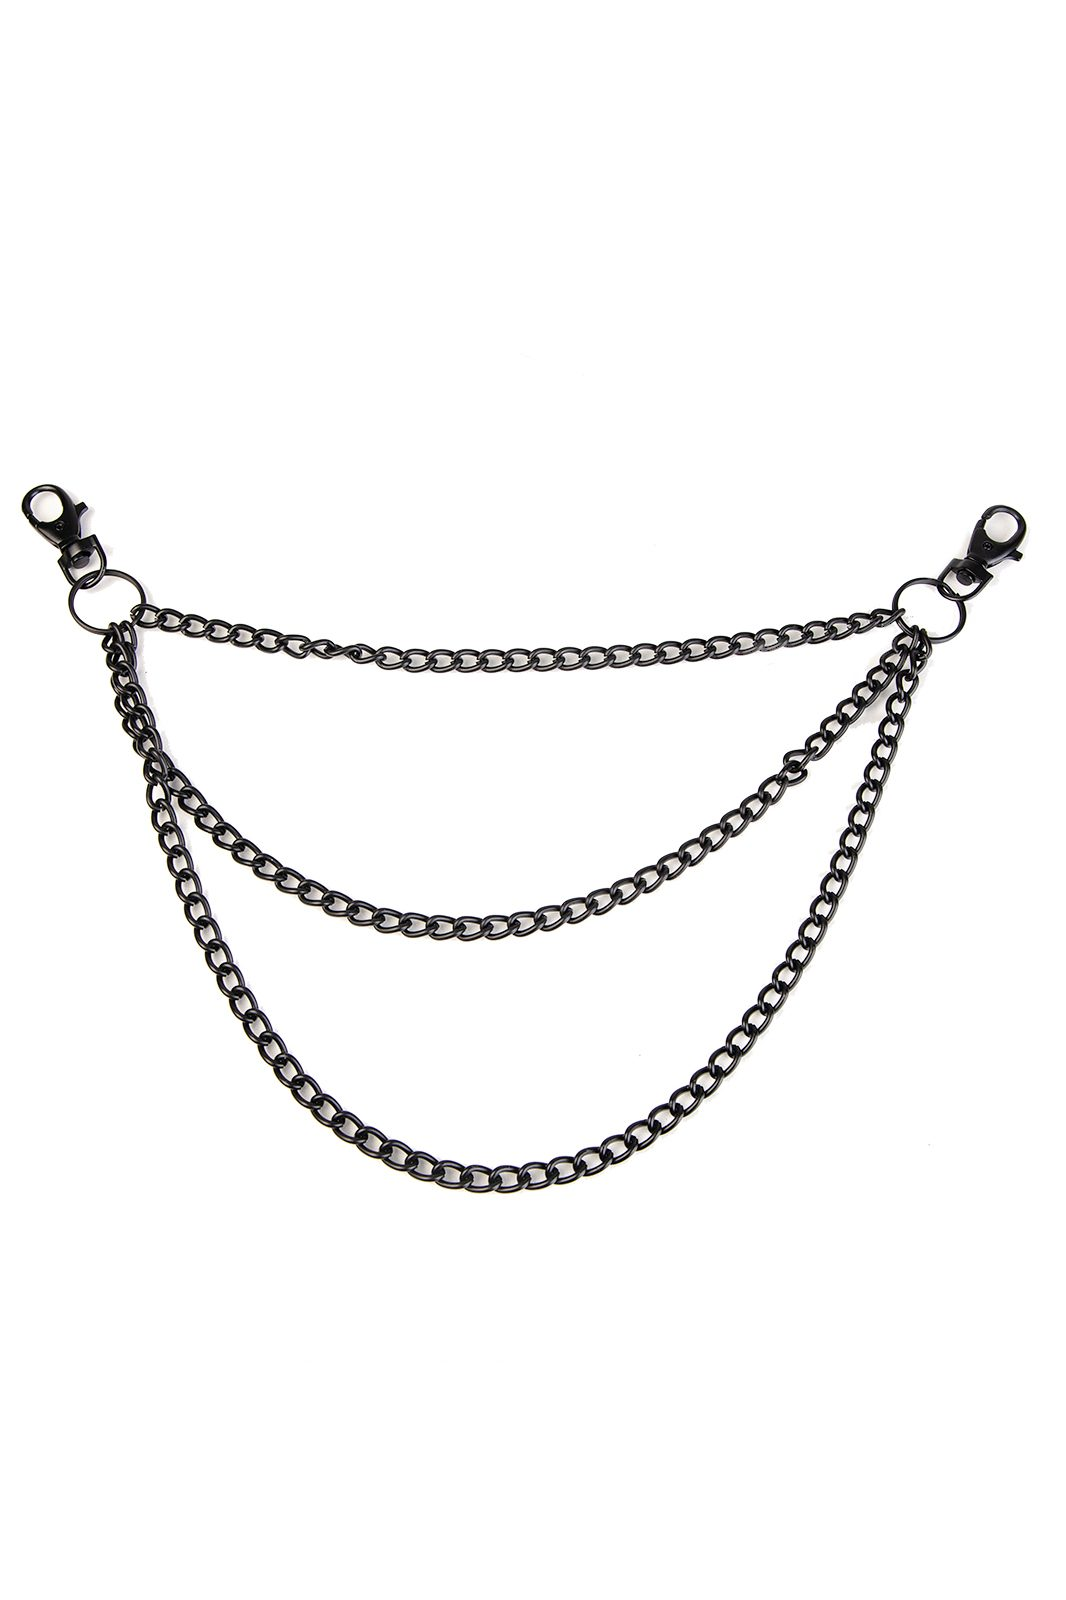 Triple Metal Chain Black